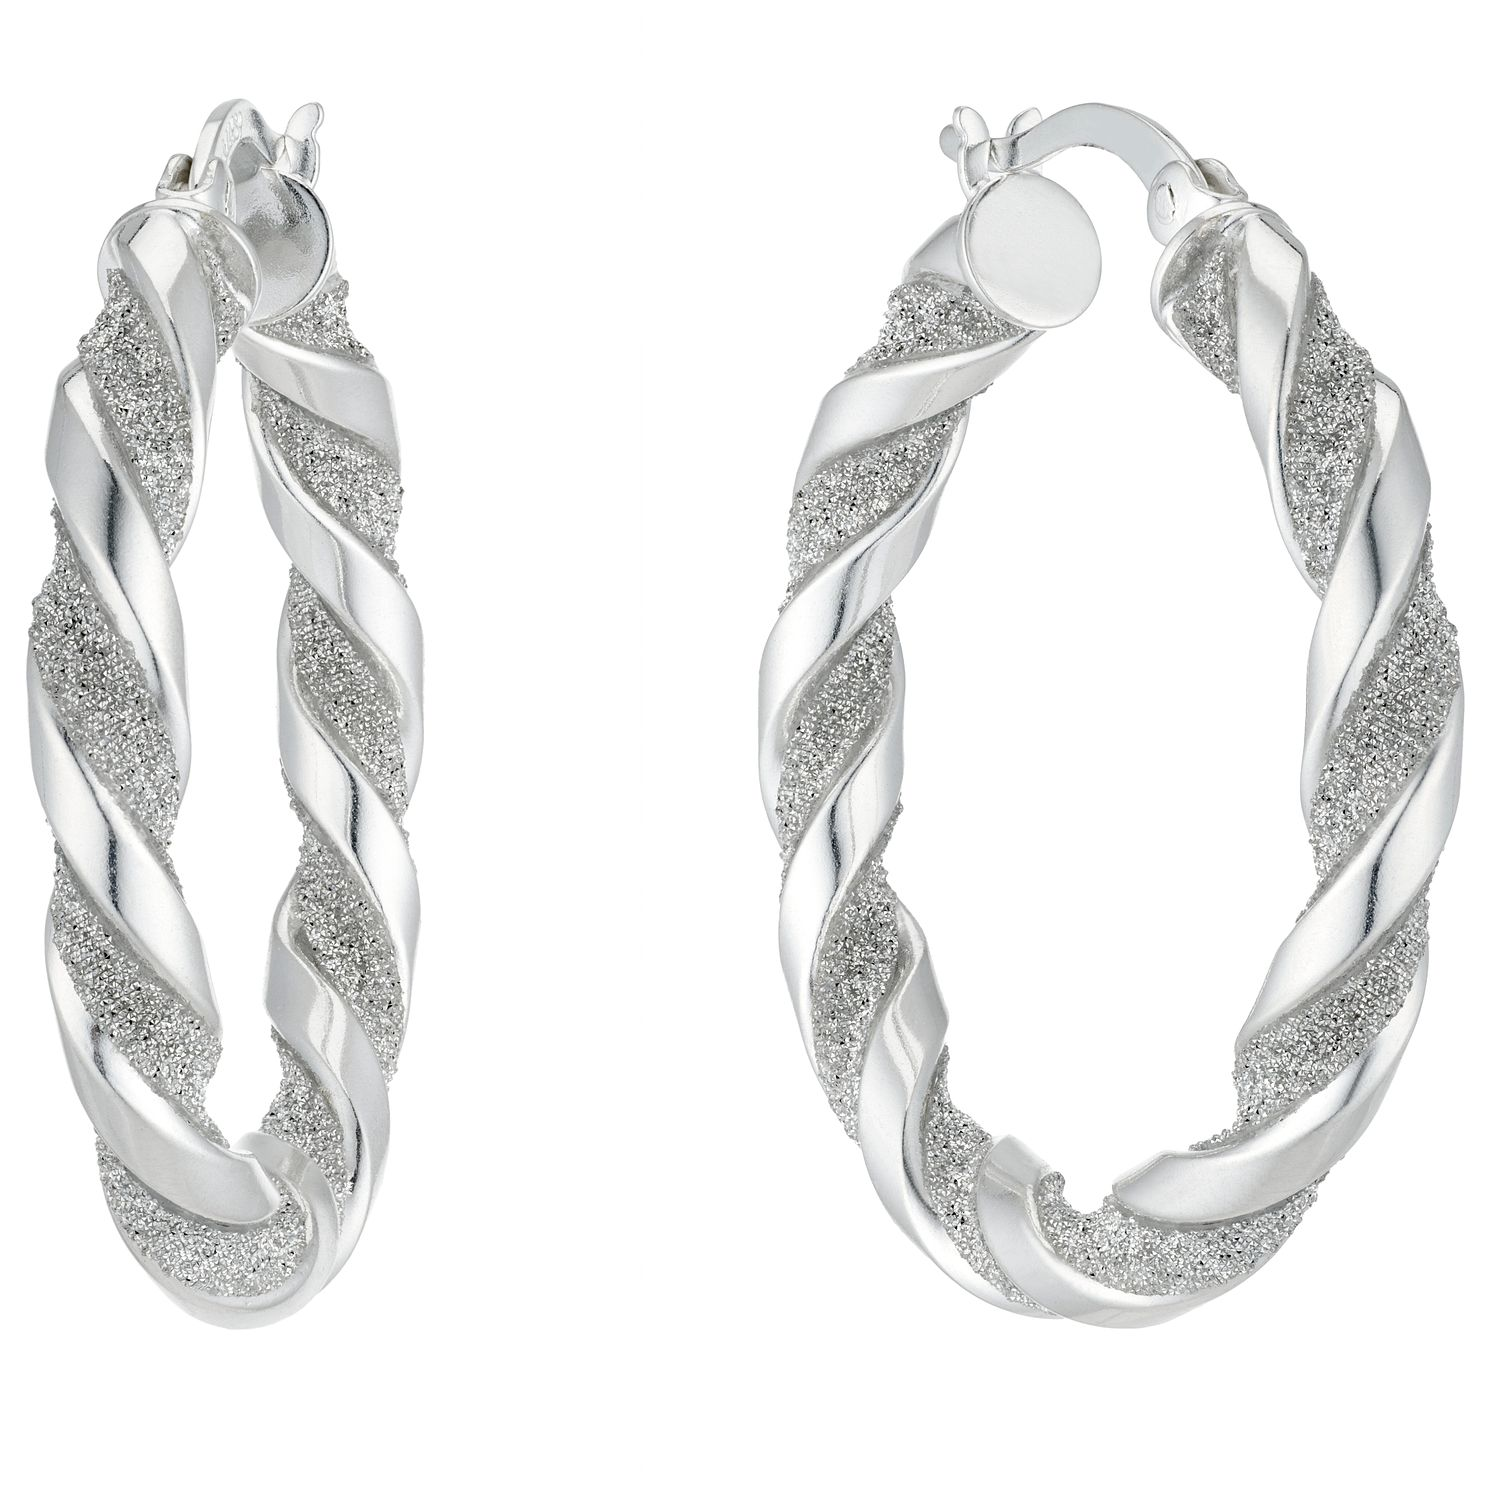 Silver Glitter Twist 23mm Creole Hoop Earrings - Product number 4818954